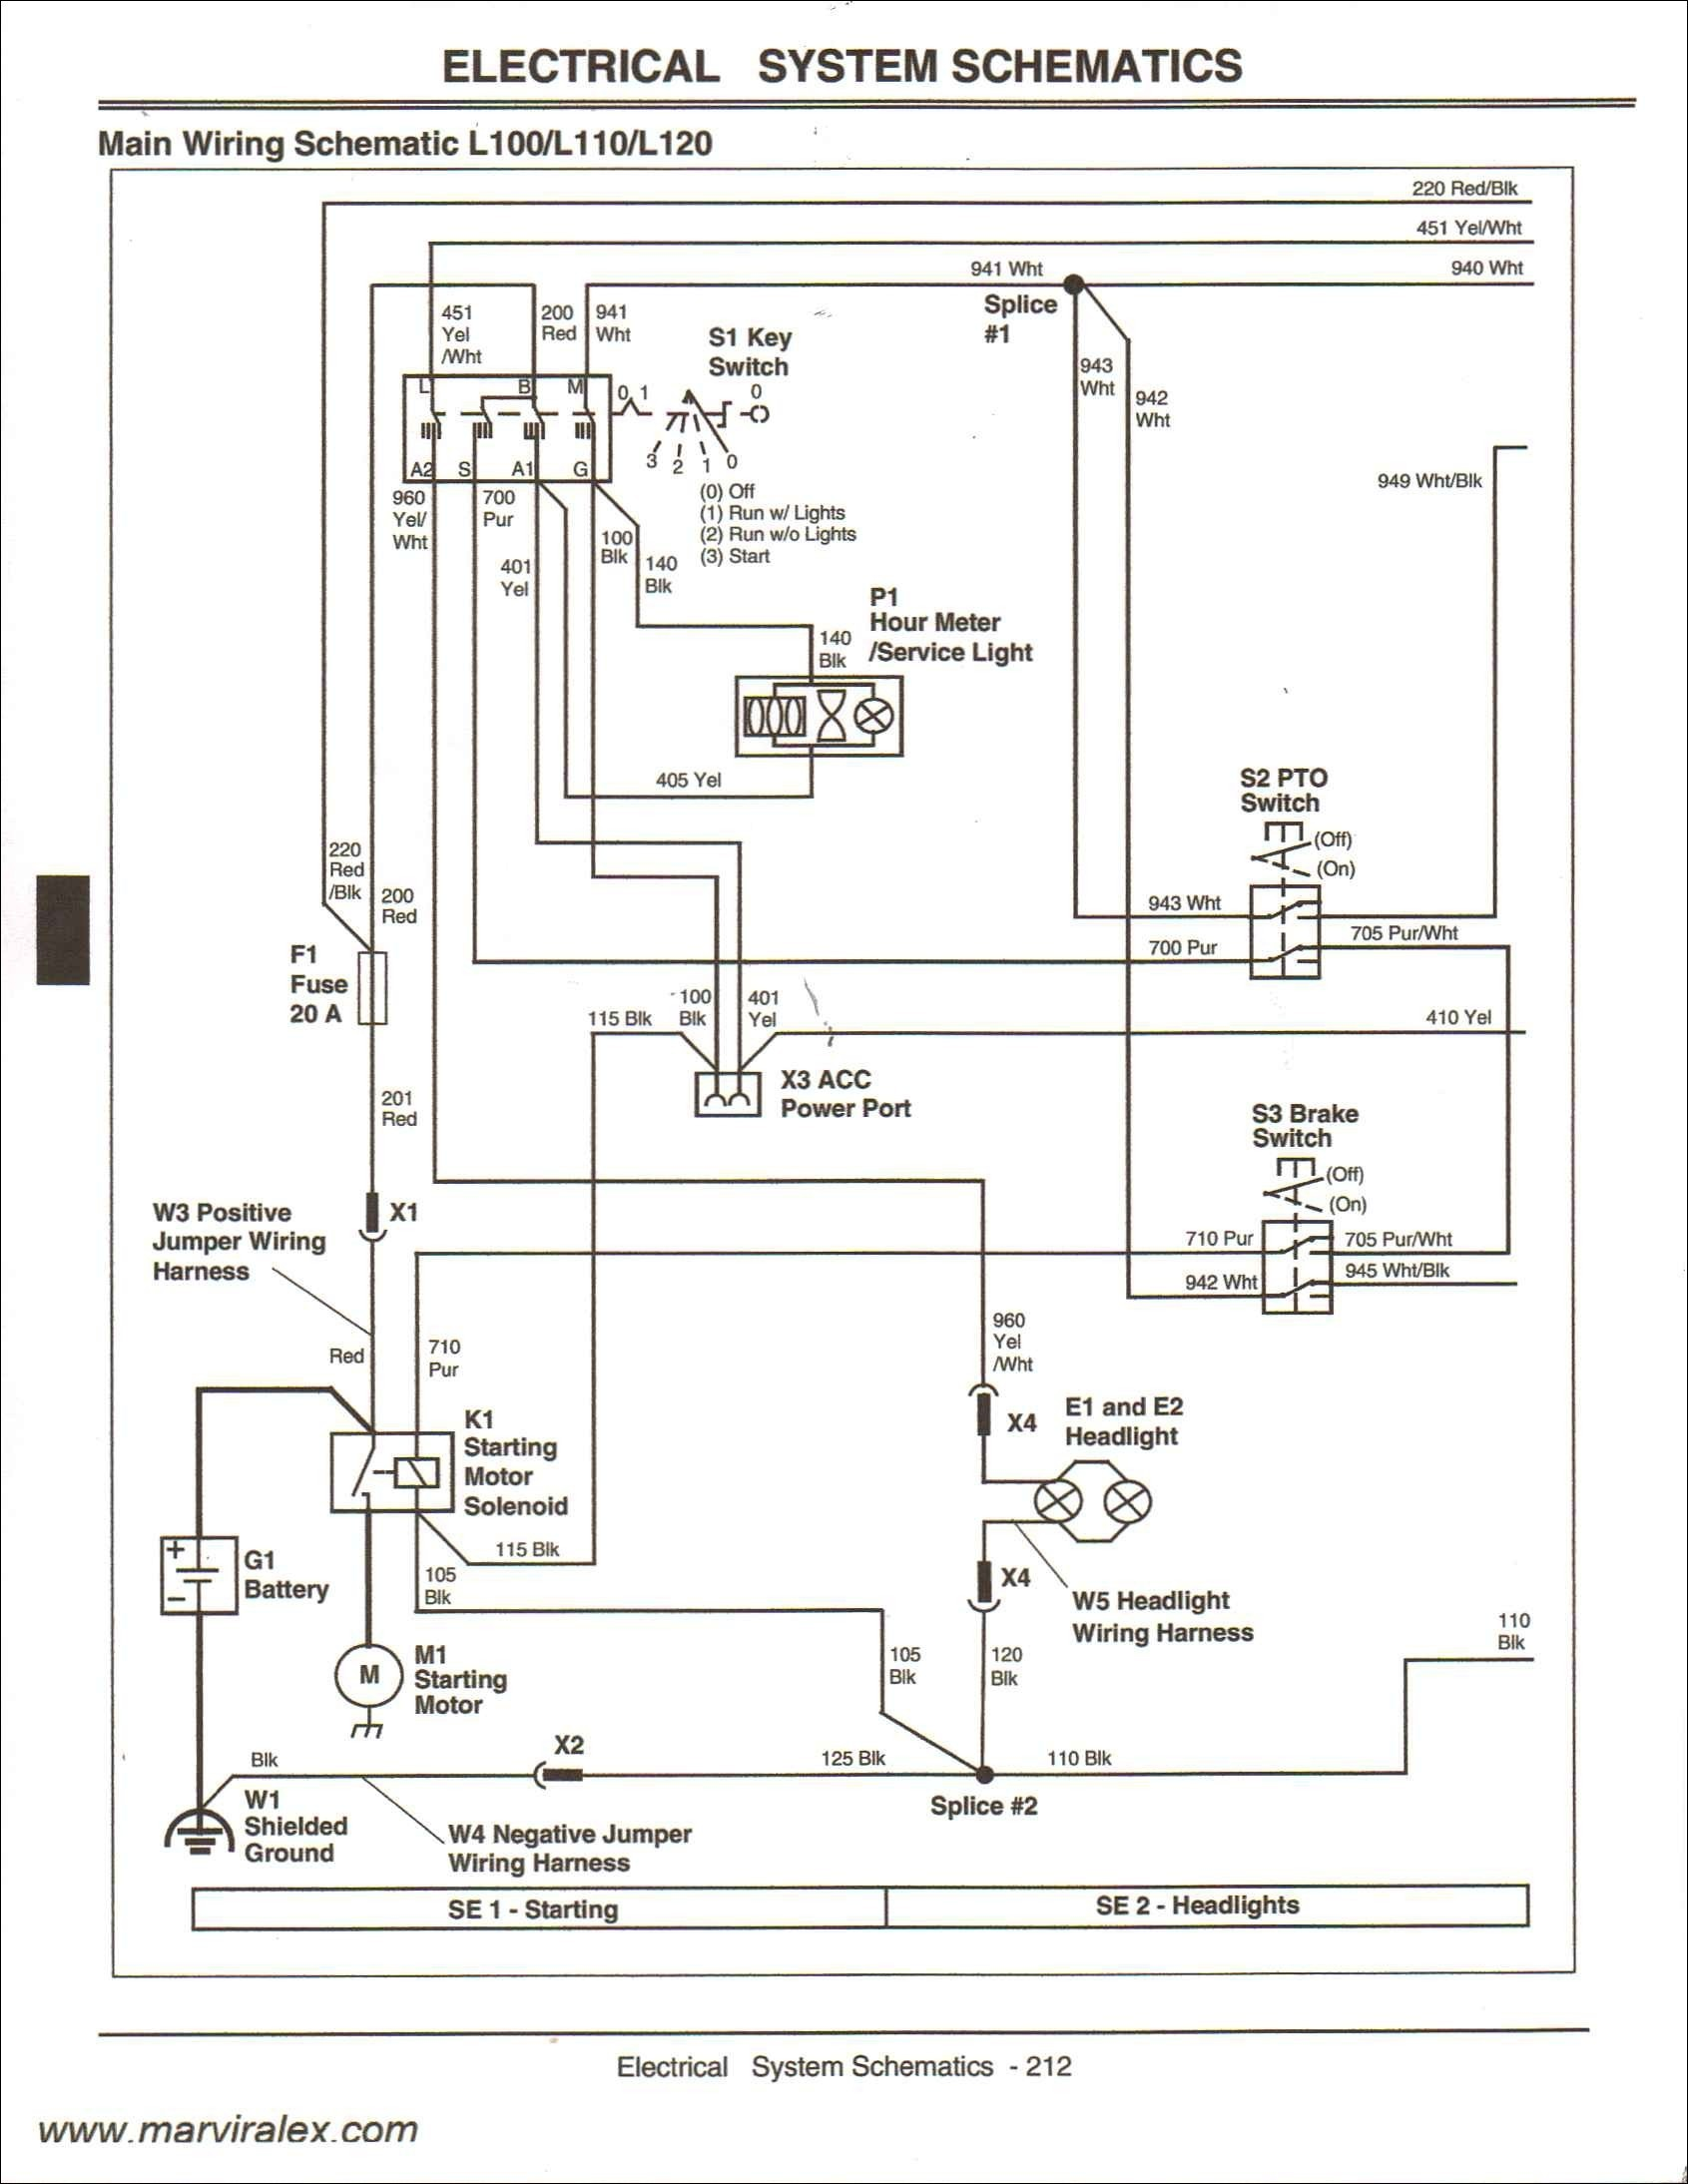 In Need Of A Wiring Diagram.html